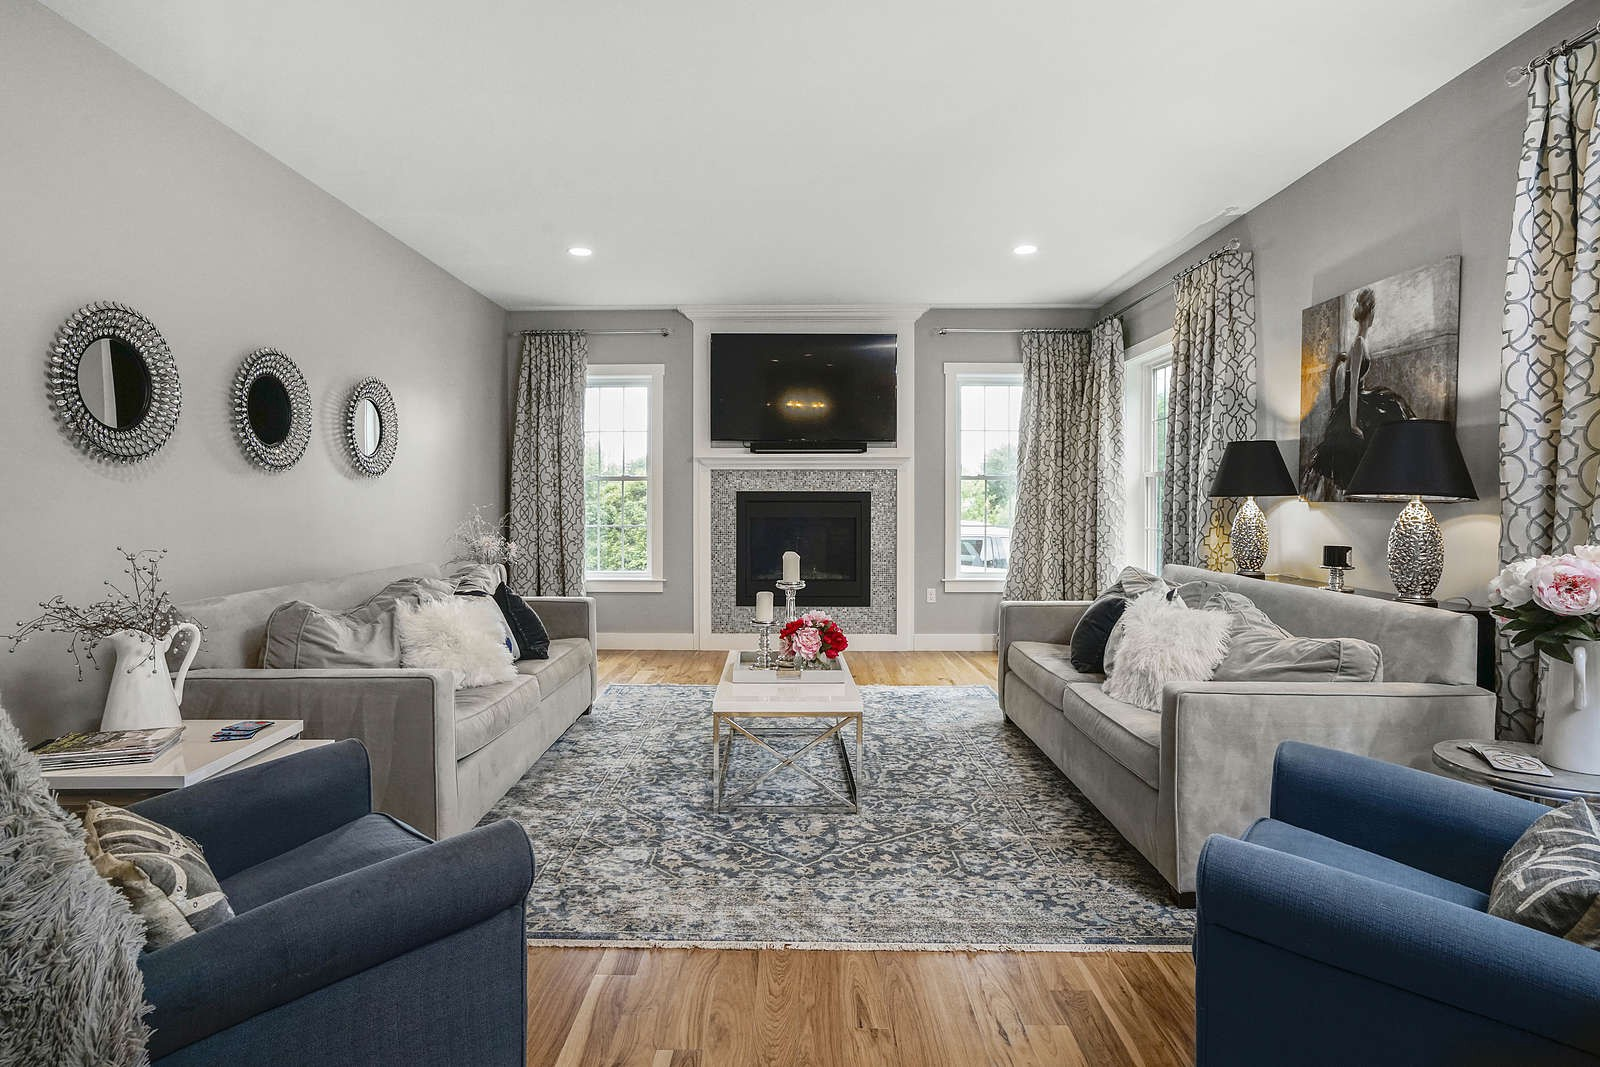 Real Estate Photography: A Guide to Quality Content